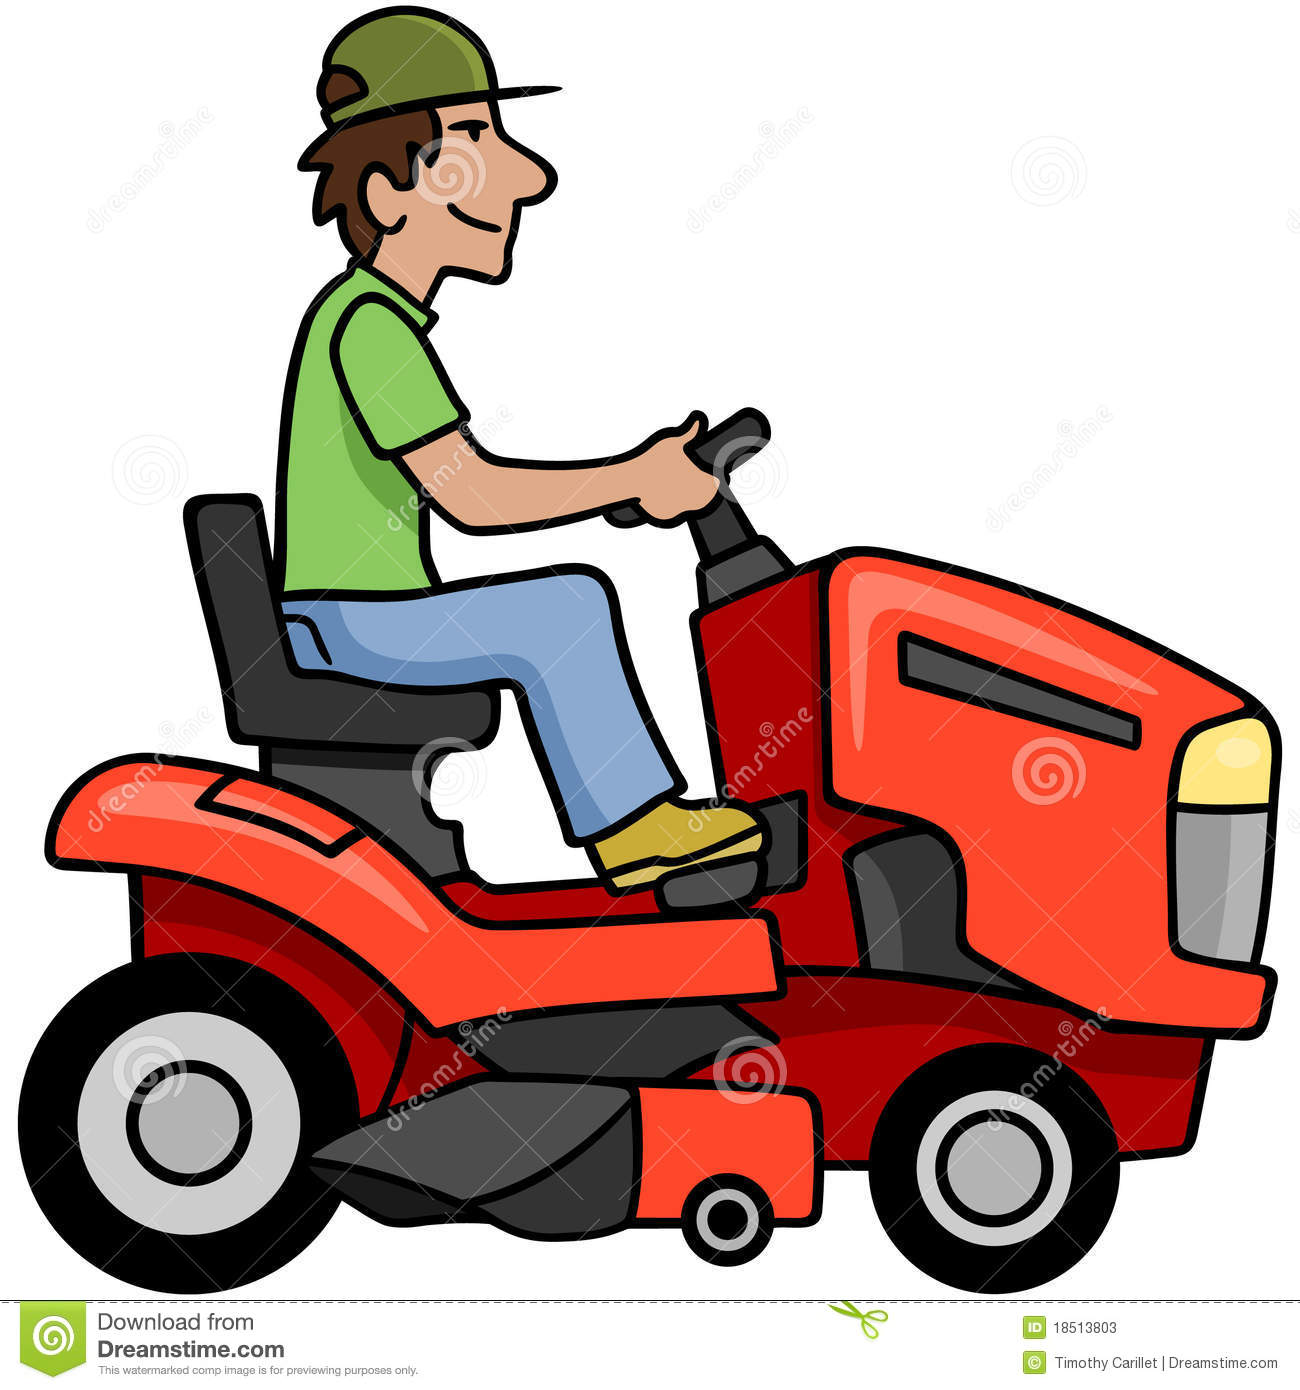 Man On Tractor Lawn Enforcment : Riding mower stock photos image